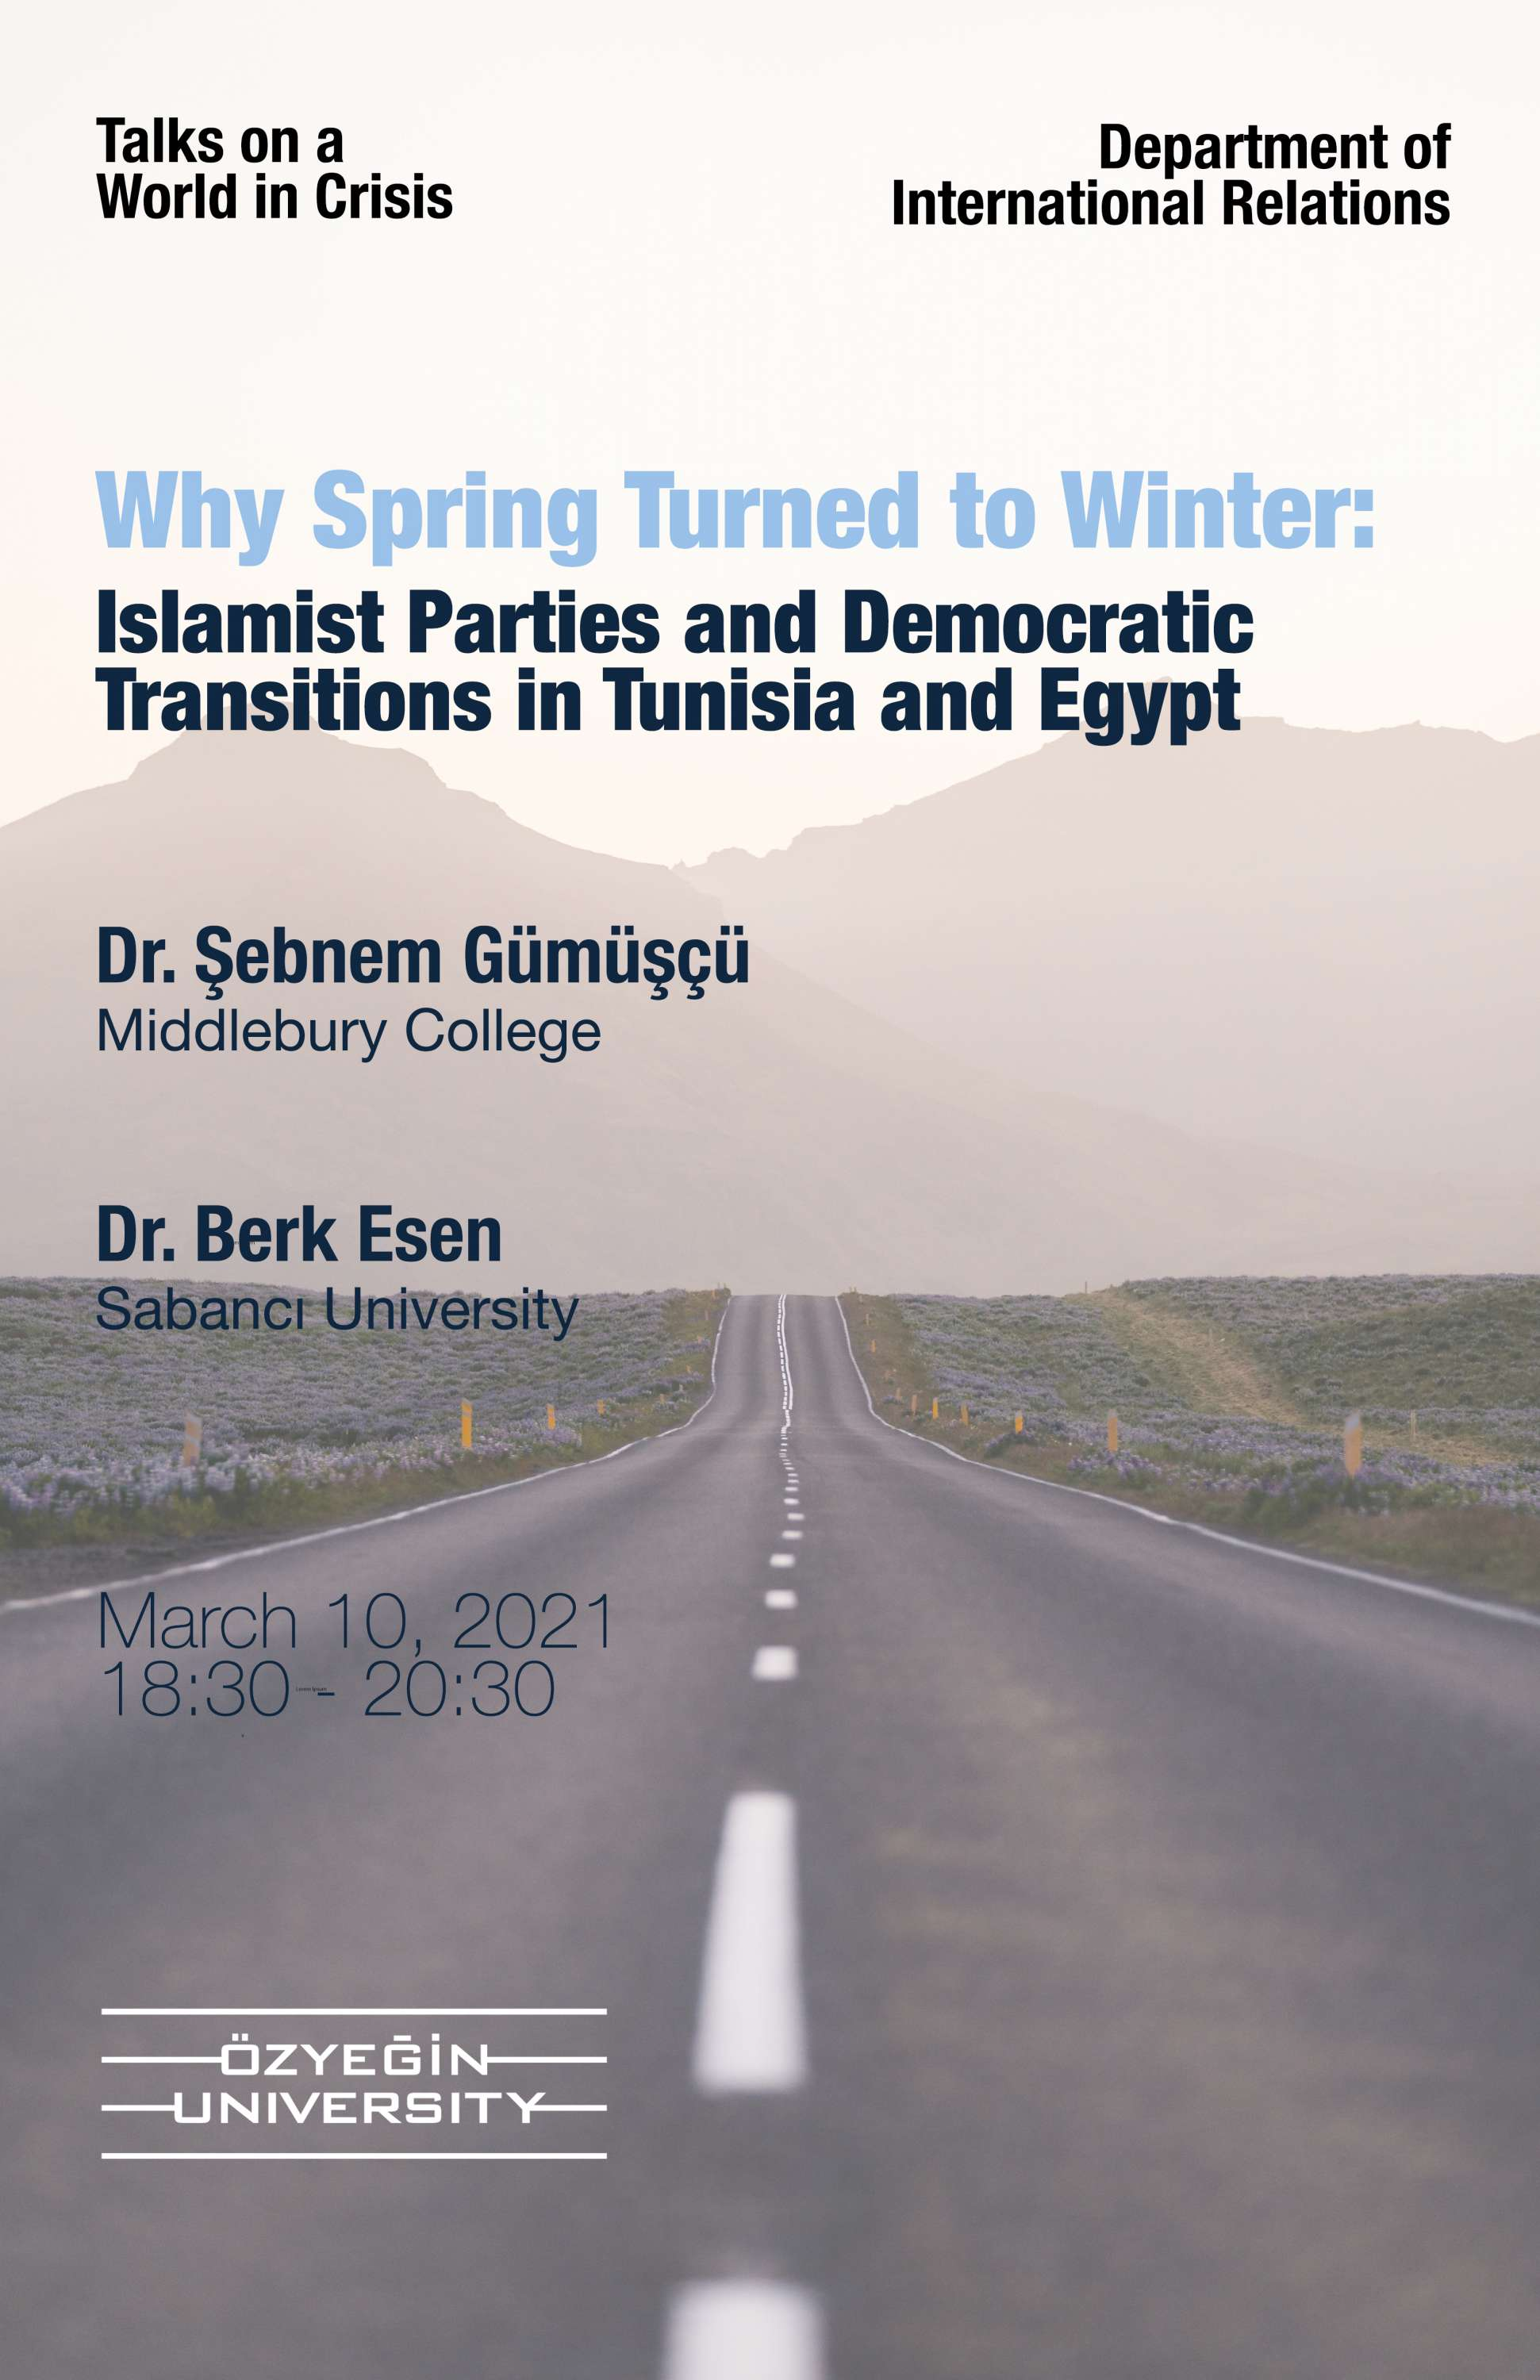 Why Spring Turned to Winter: Islamist Parties and Democratic Transitions in Tunisia and Egypt